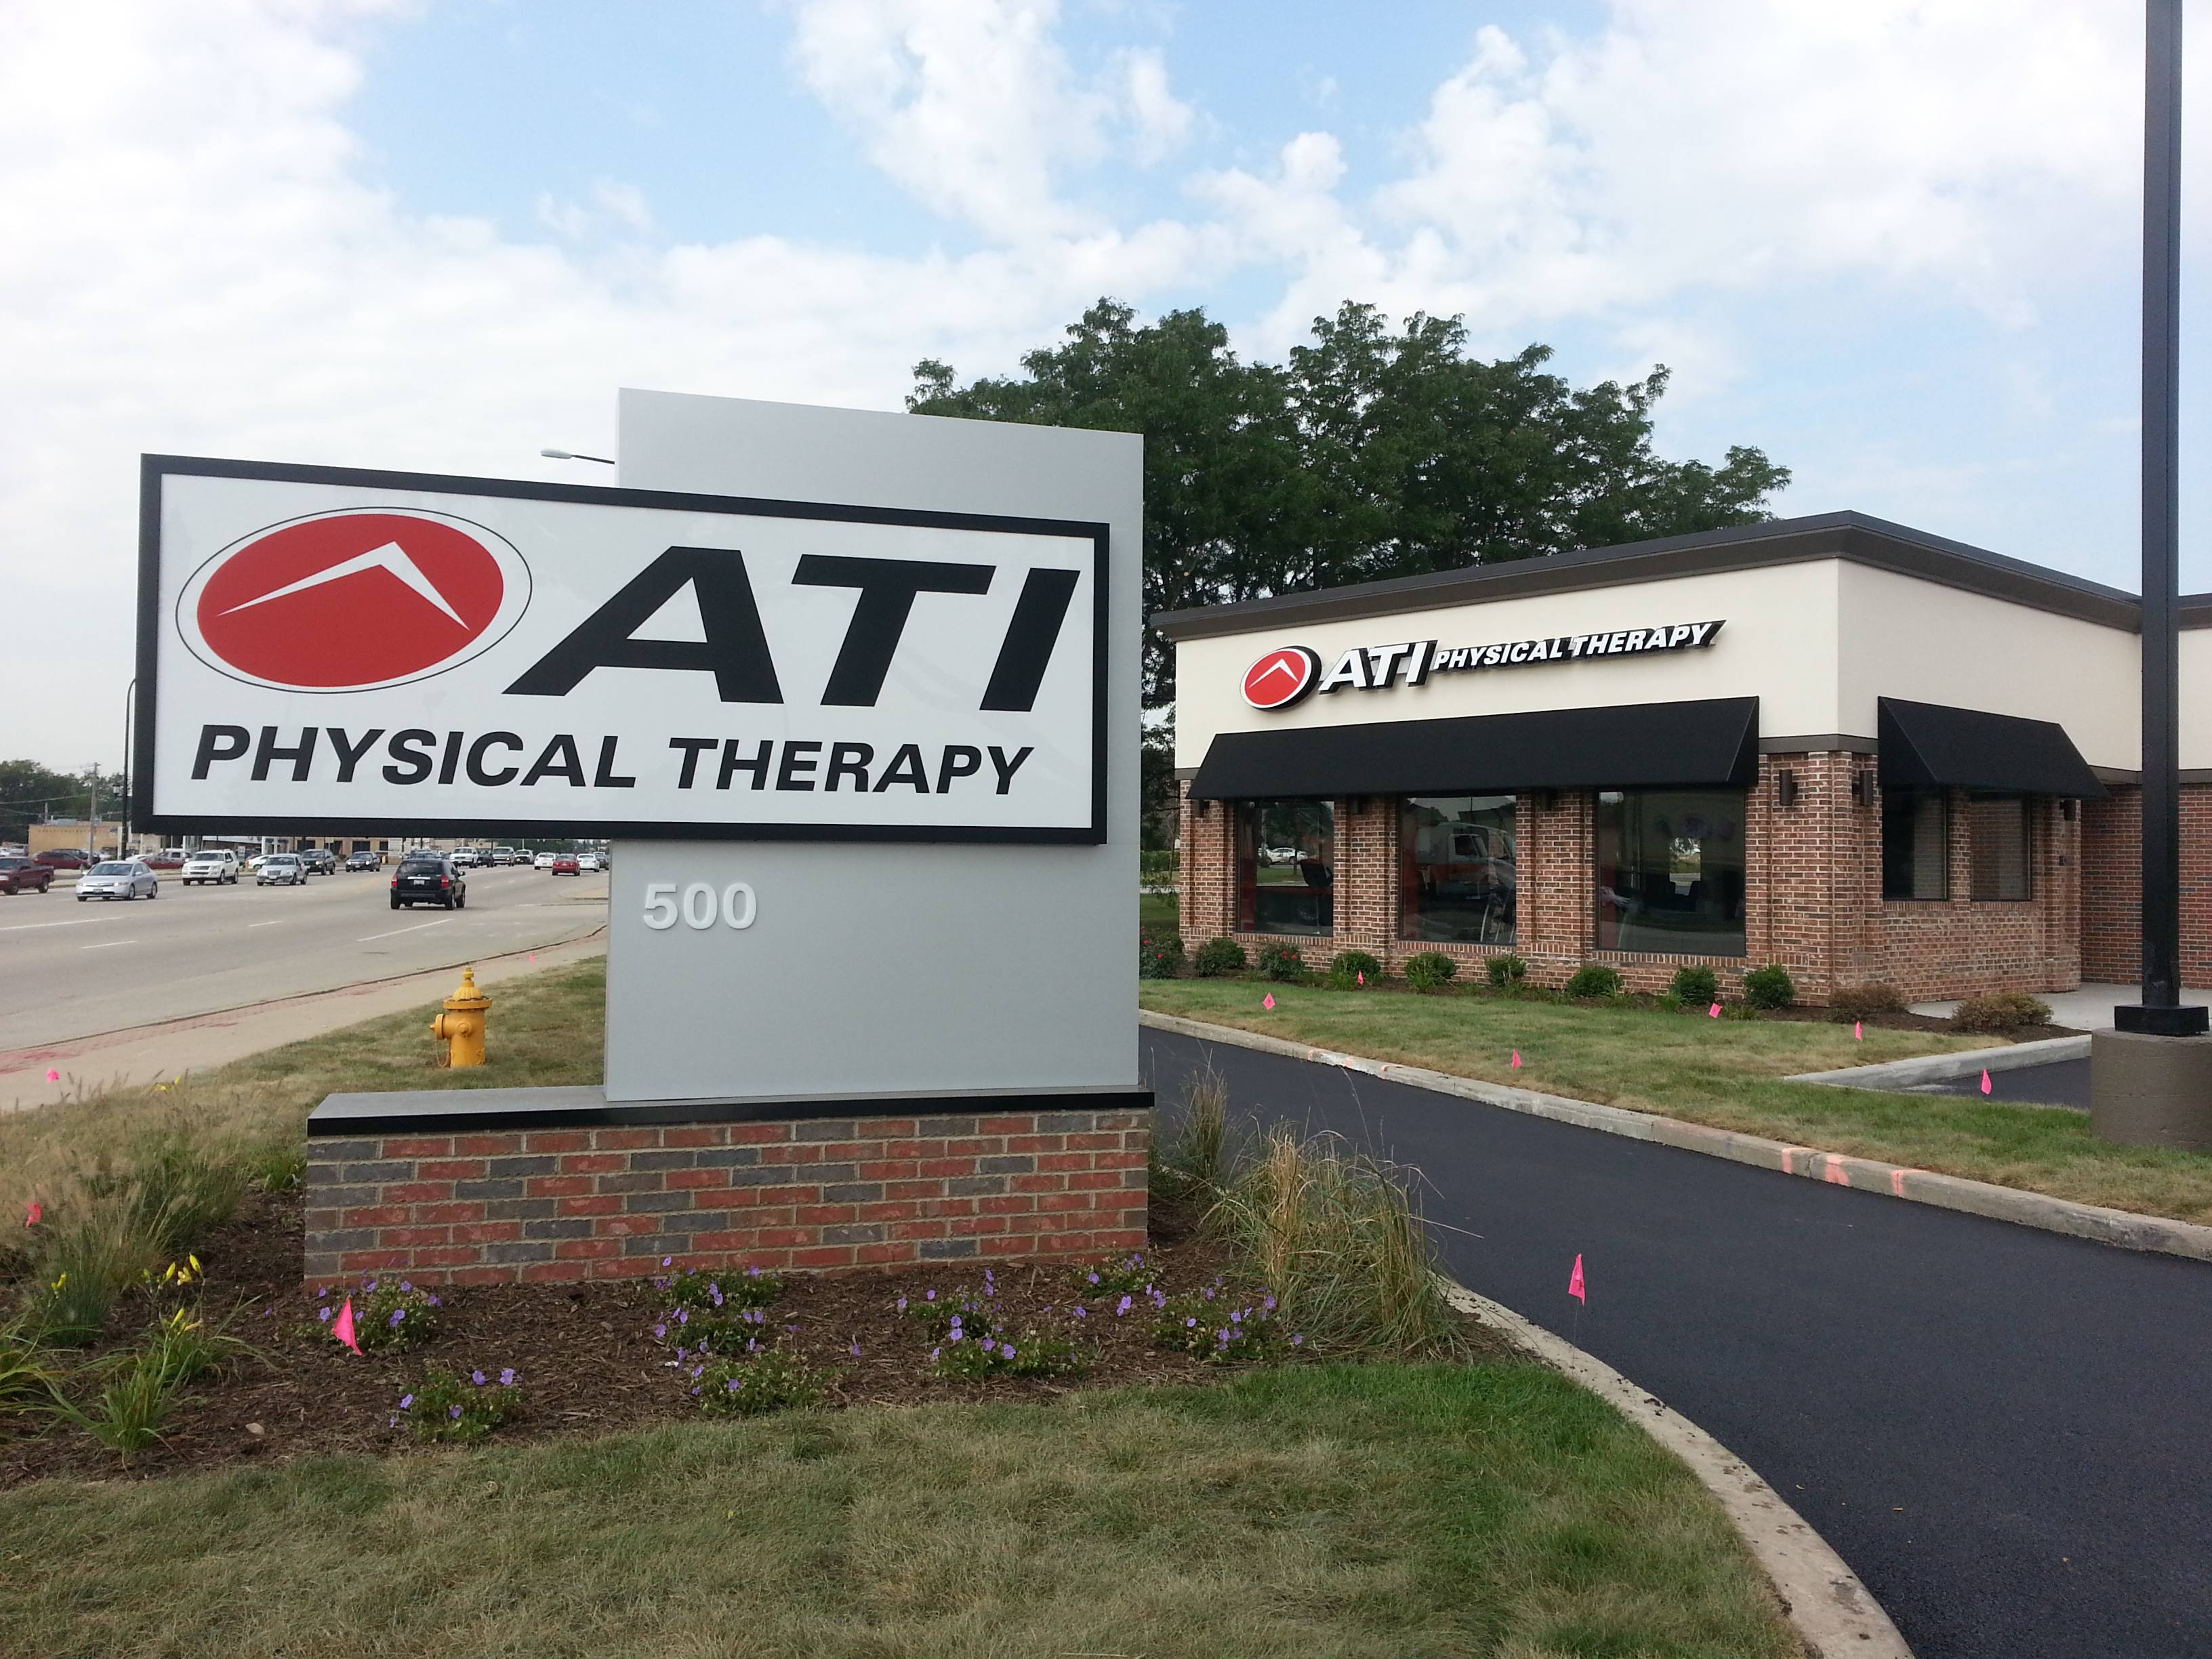 ATI Physical Therapy, Addison, IL. University of St. Augustine for Health Sciences and ATI Physical Therapy inked a multifaceted collaborative agreement to expand internship opportunities and mentoring programs.